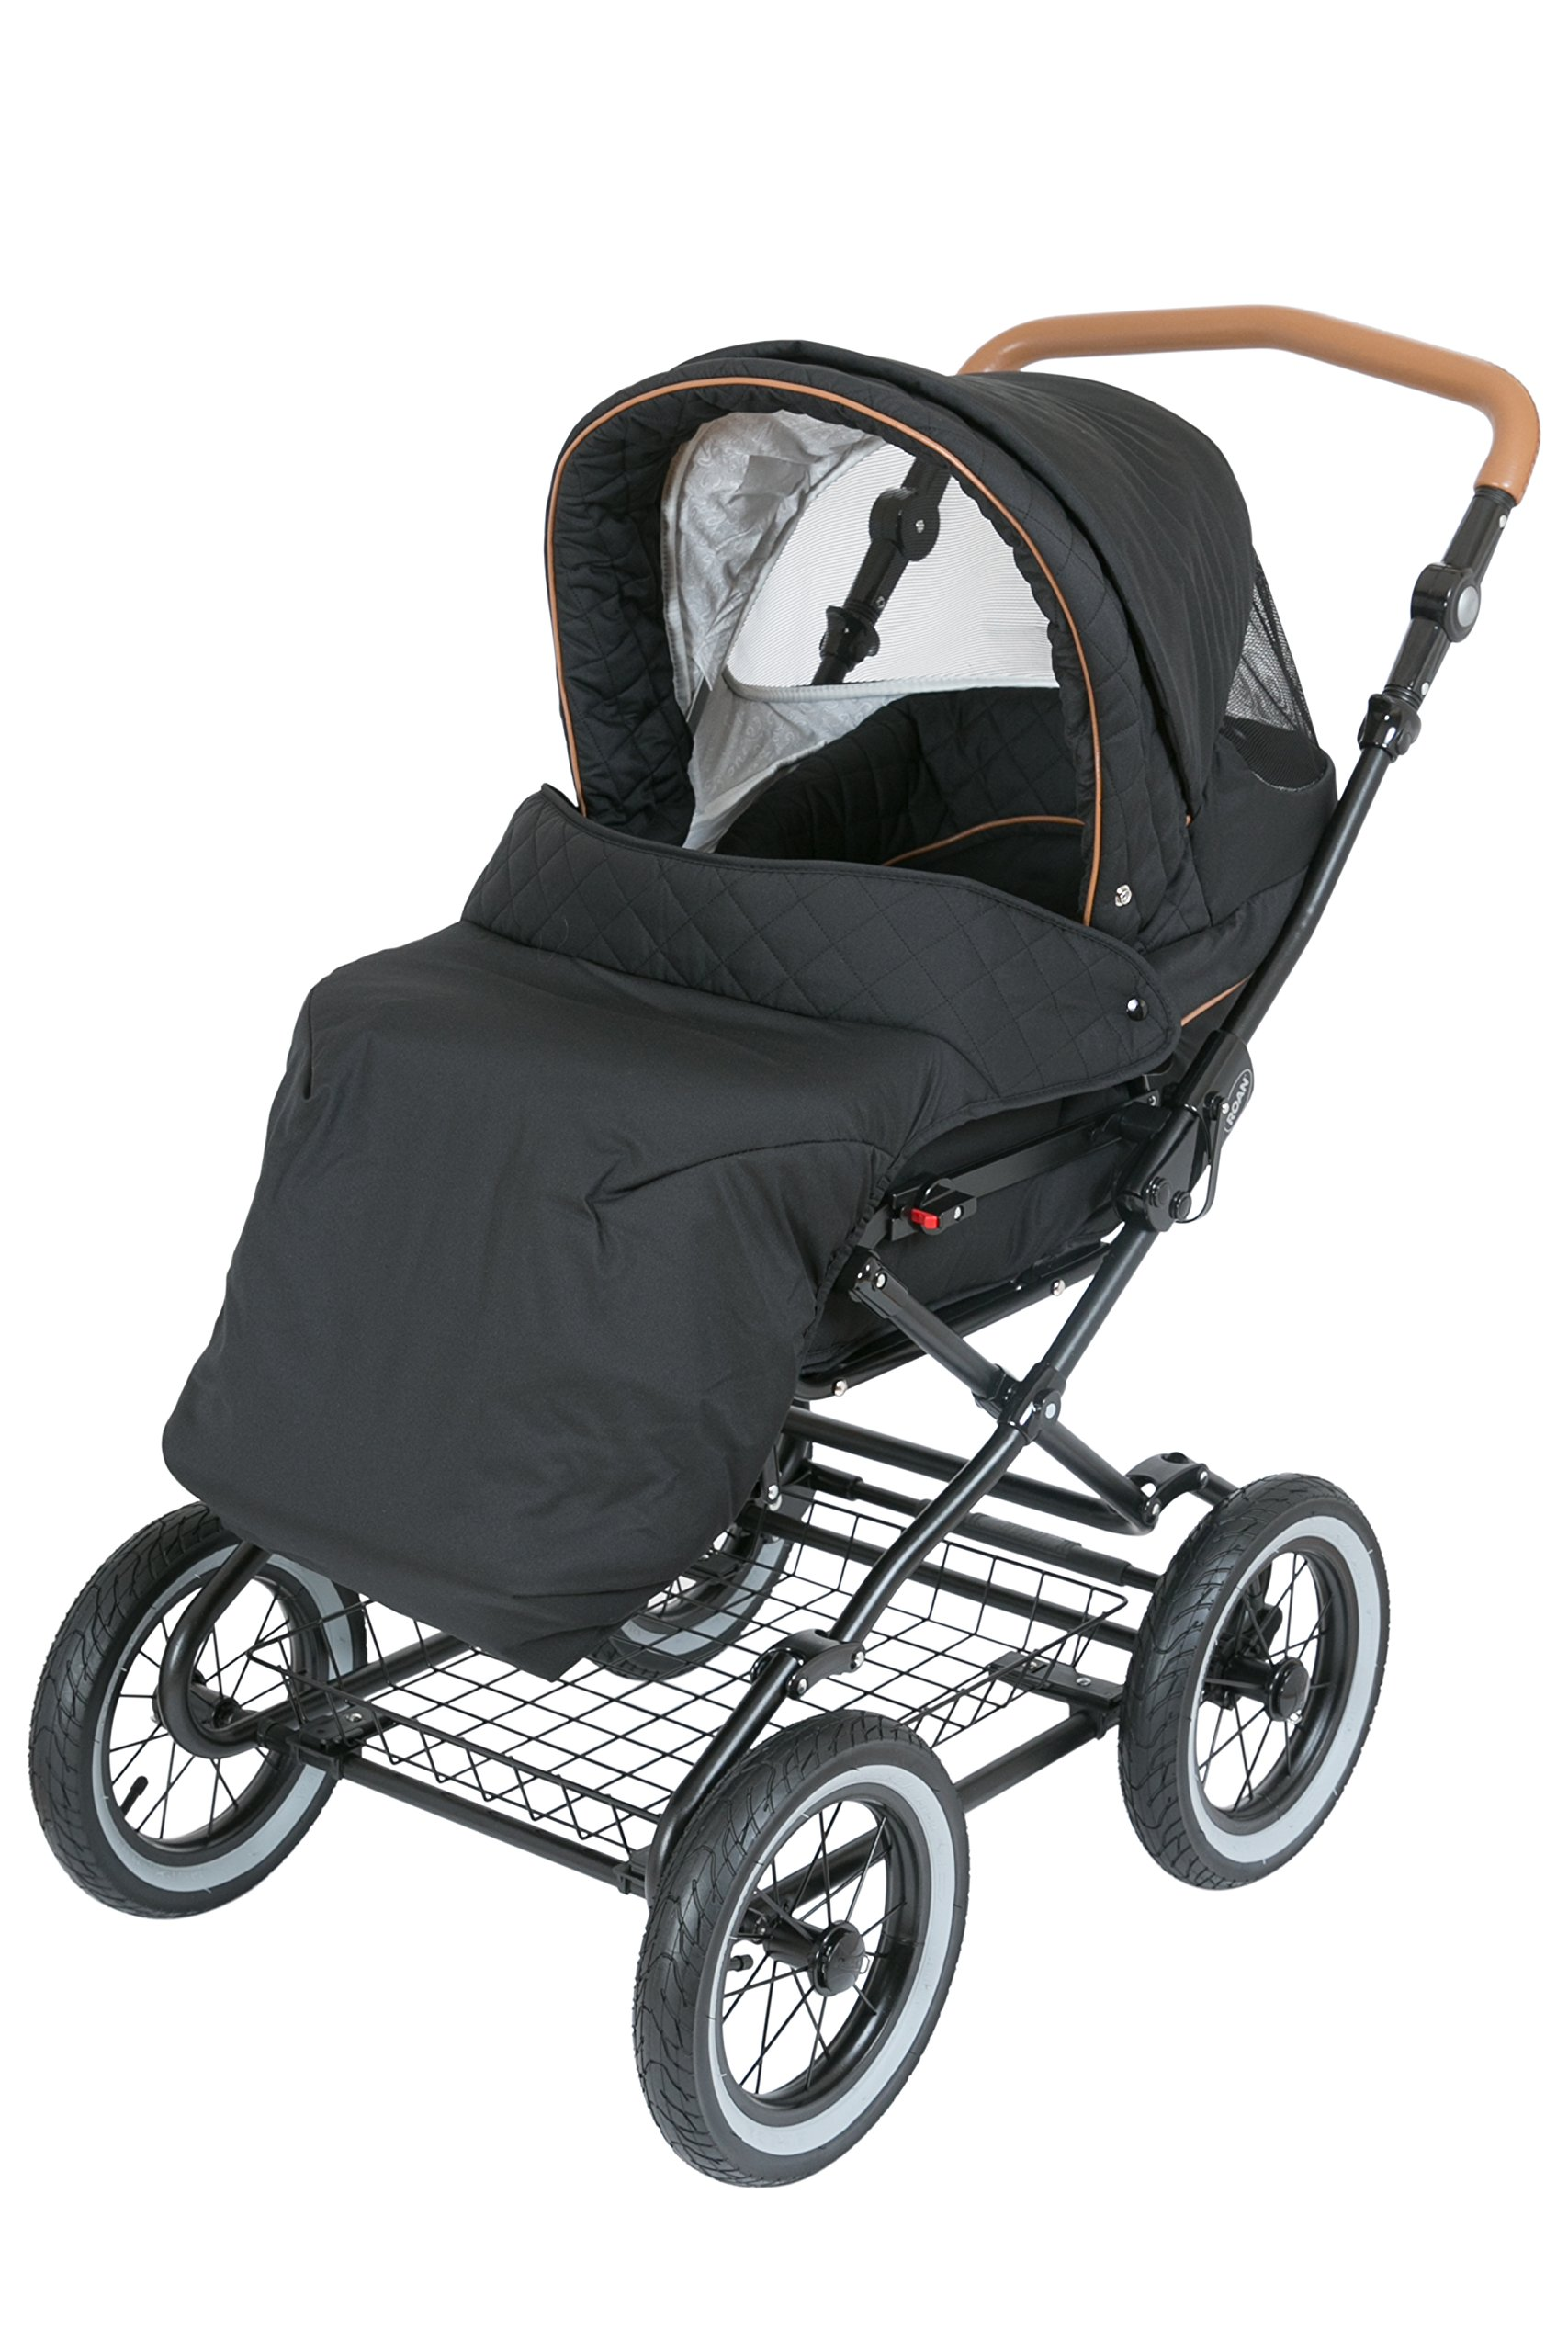 Luxury Roan Kortina 2-in-1 Pram Stroller Pushchair with Big Baby Bassinet and Toddler Reclining Seat with Five Point Safety System UV Proof Canopy and Storage Basket for child up to 3 year (graphite) by ROAN (Image #7)